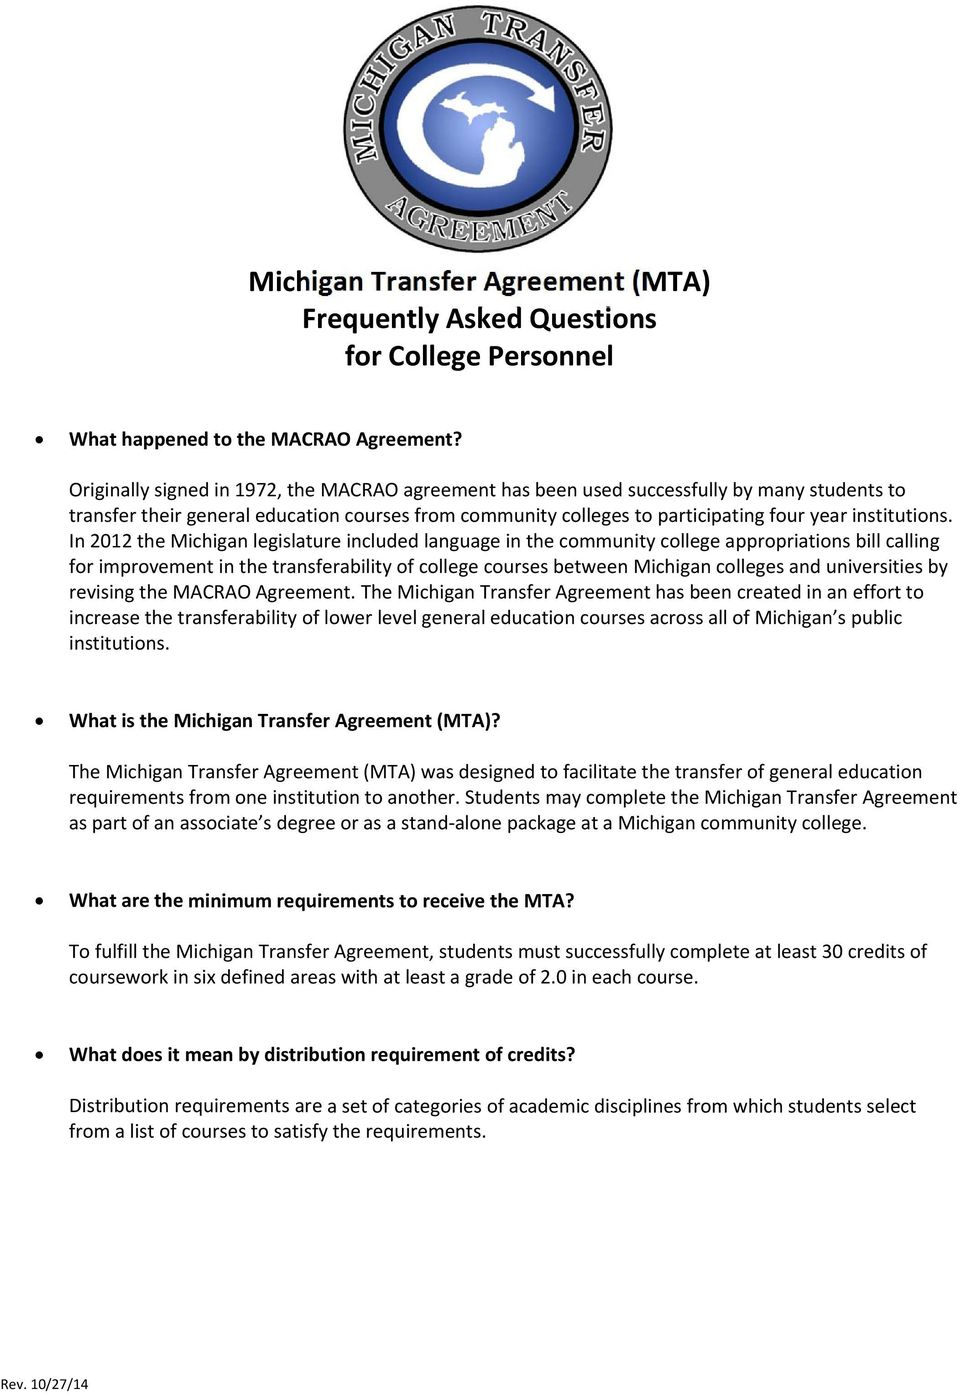 Michigan Transfer Agreement Mta Frequently Asked Questions For